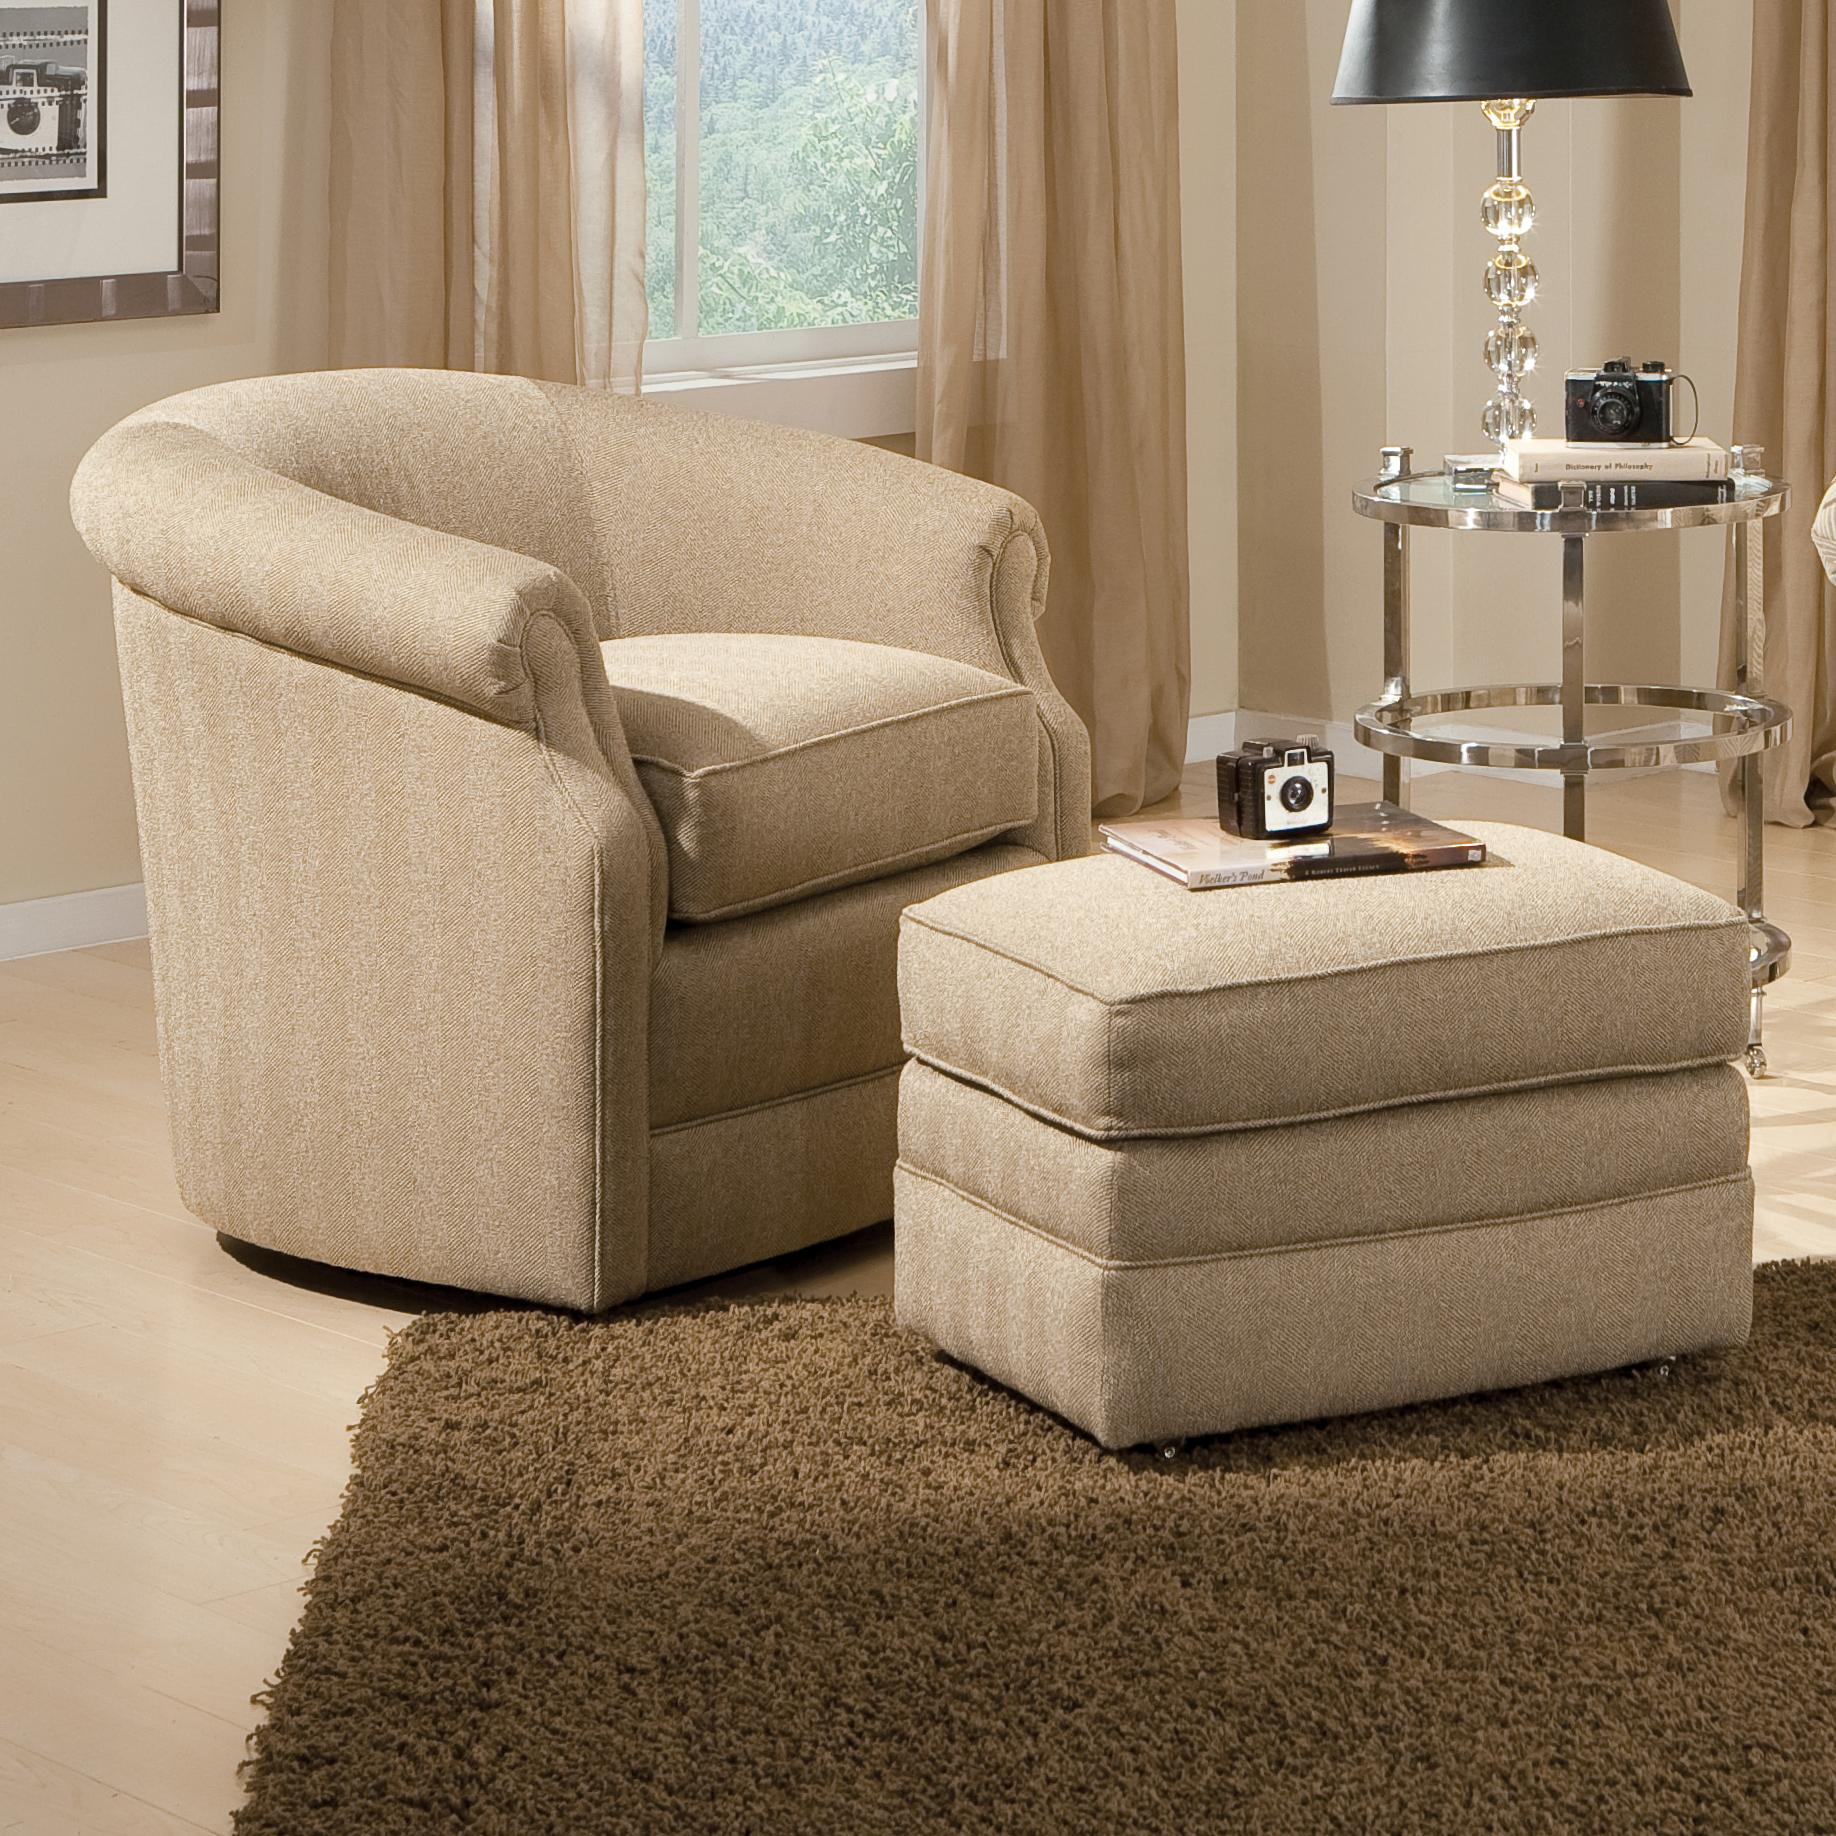 Accent Chairs and Ottomans SB Barrel Swivel Chair and Ottoman by Smith Brothers at Sprintz Furniture